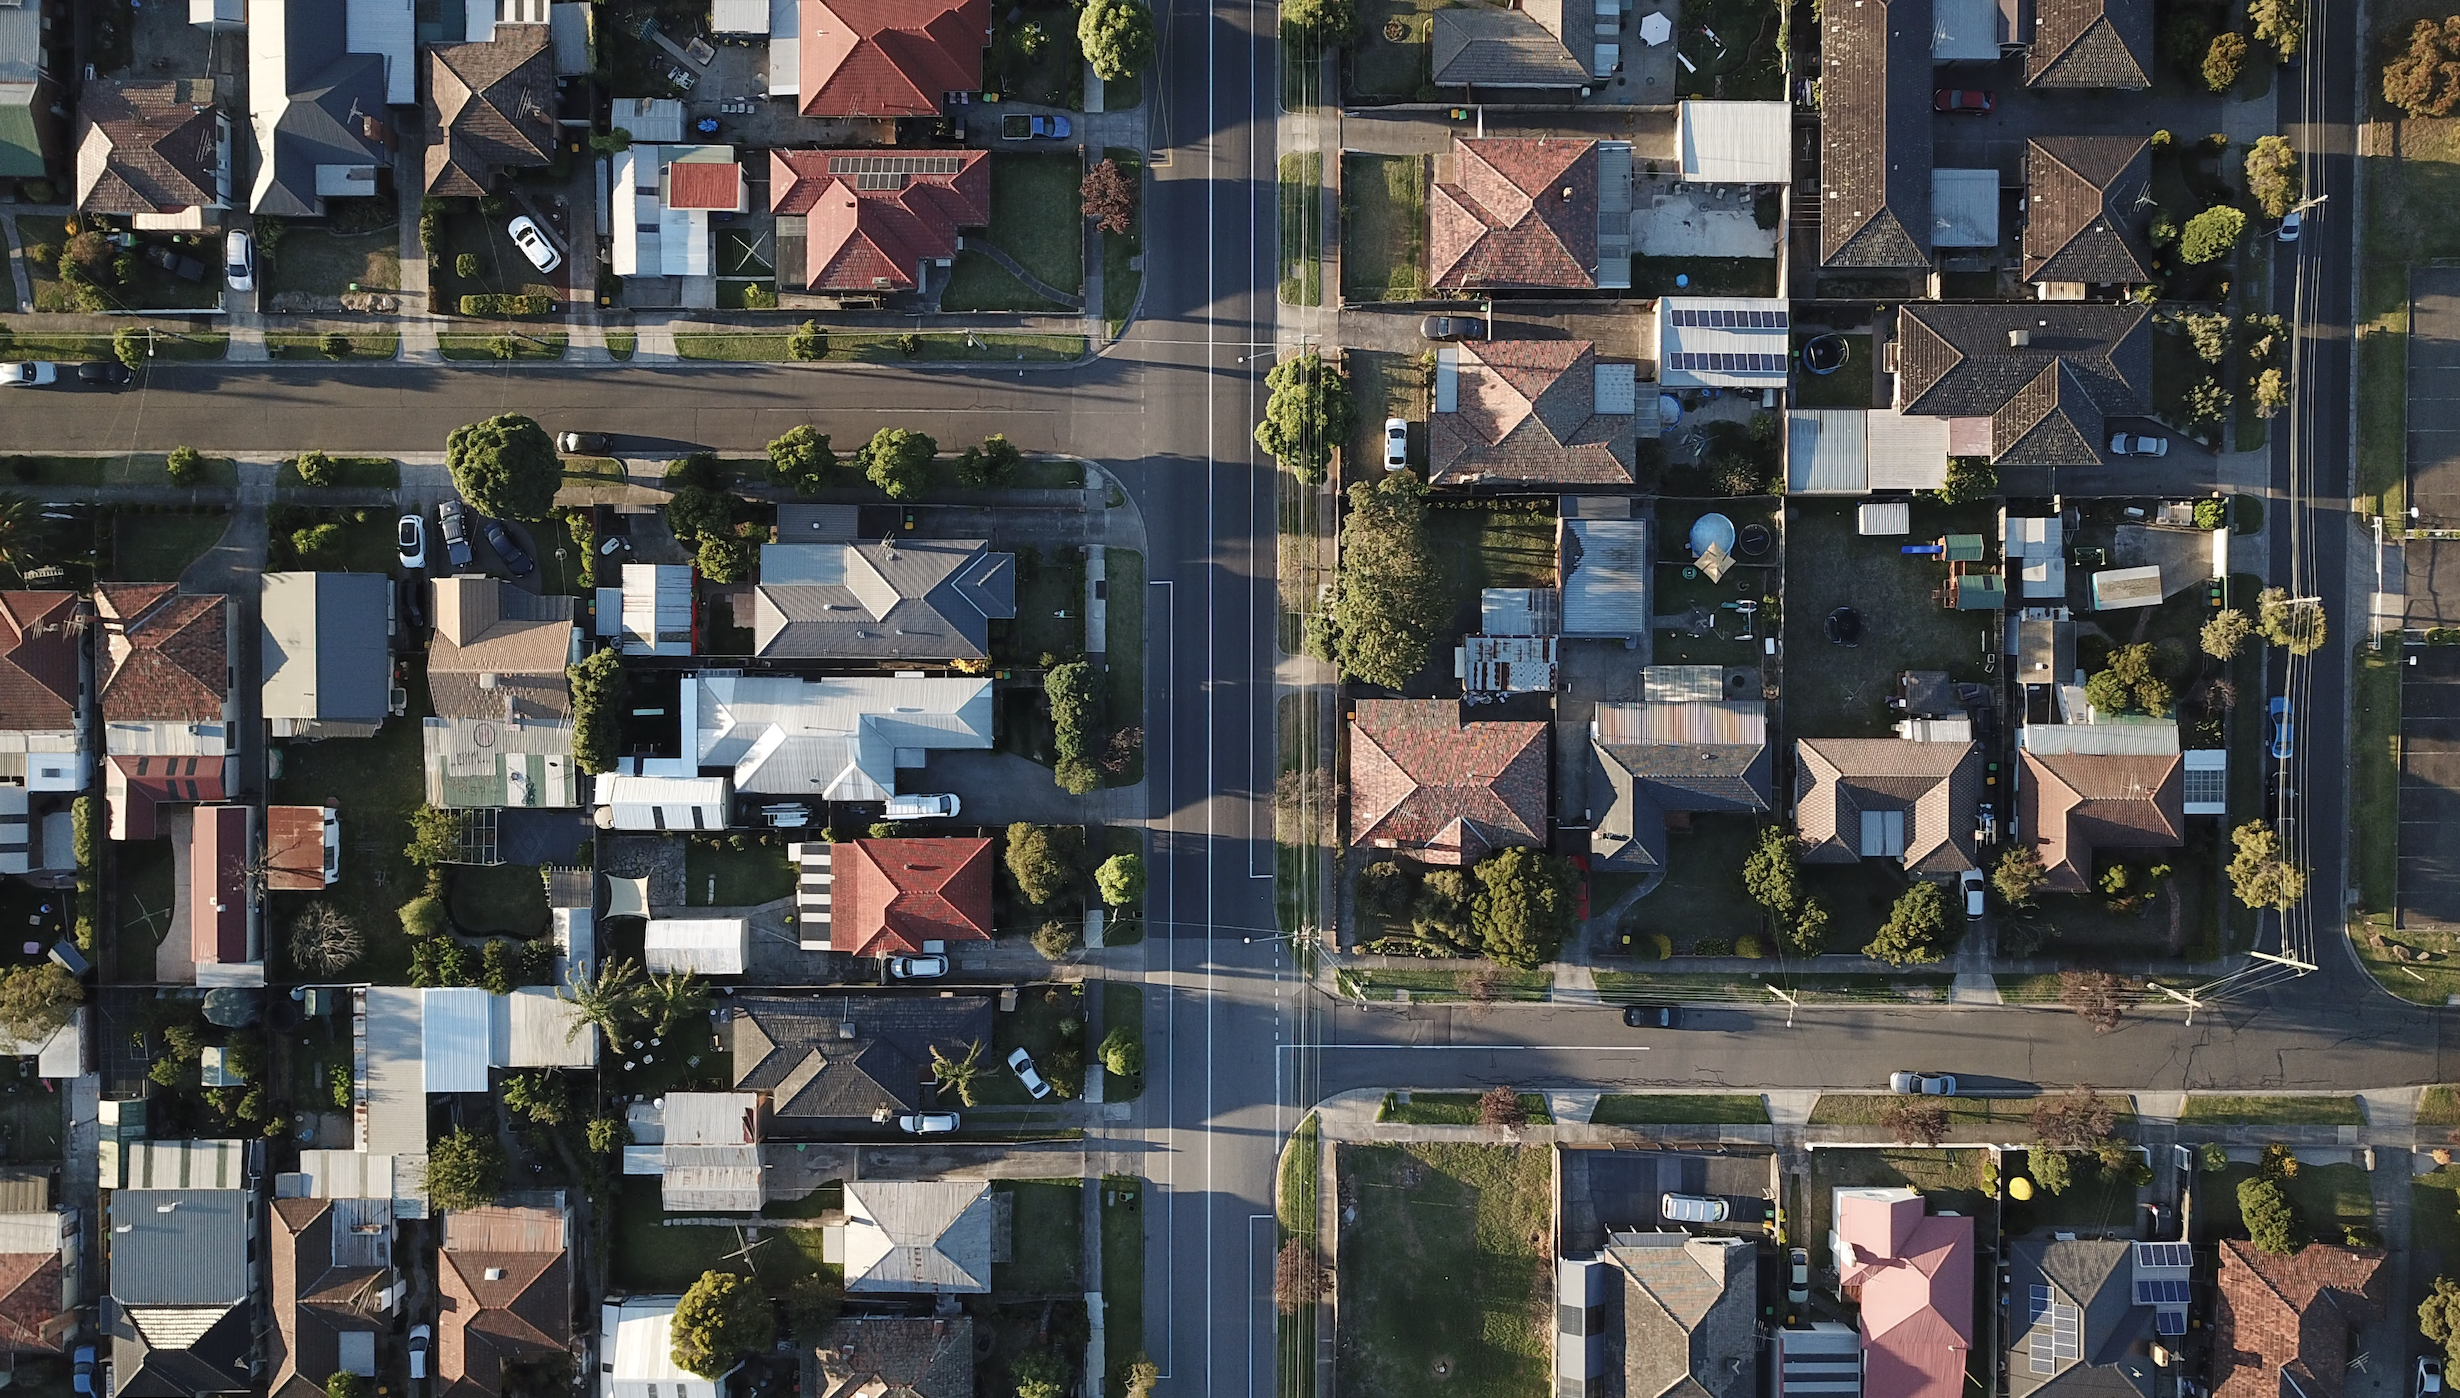 drone view of the roofs of houses